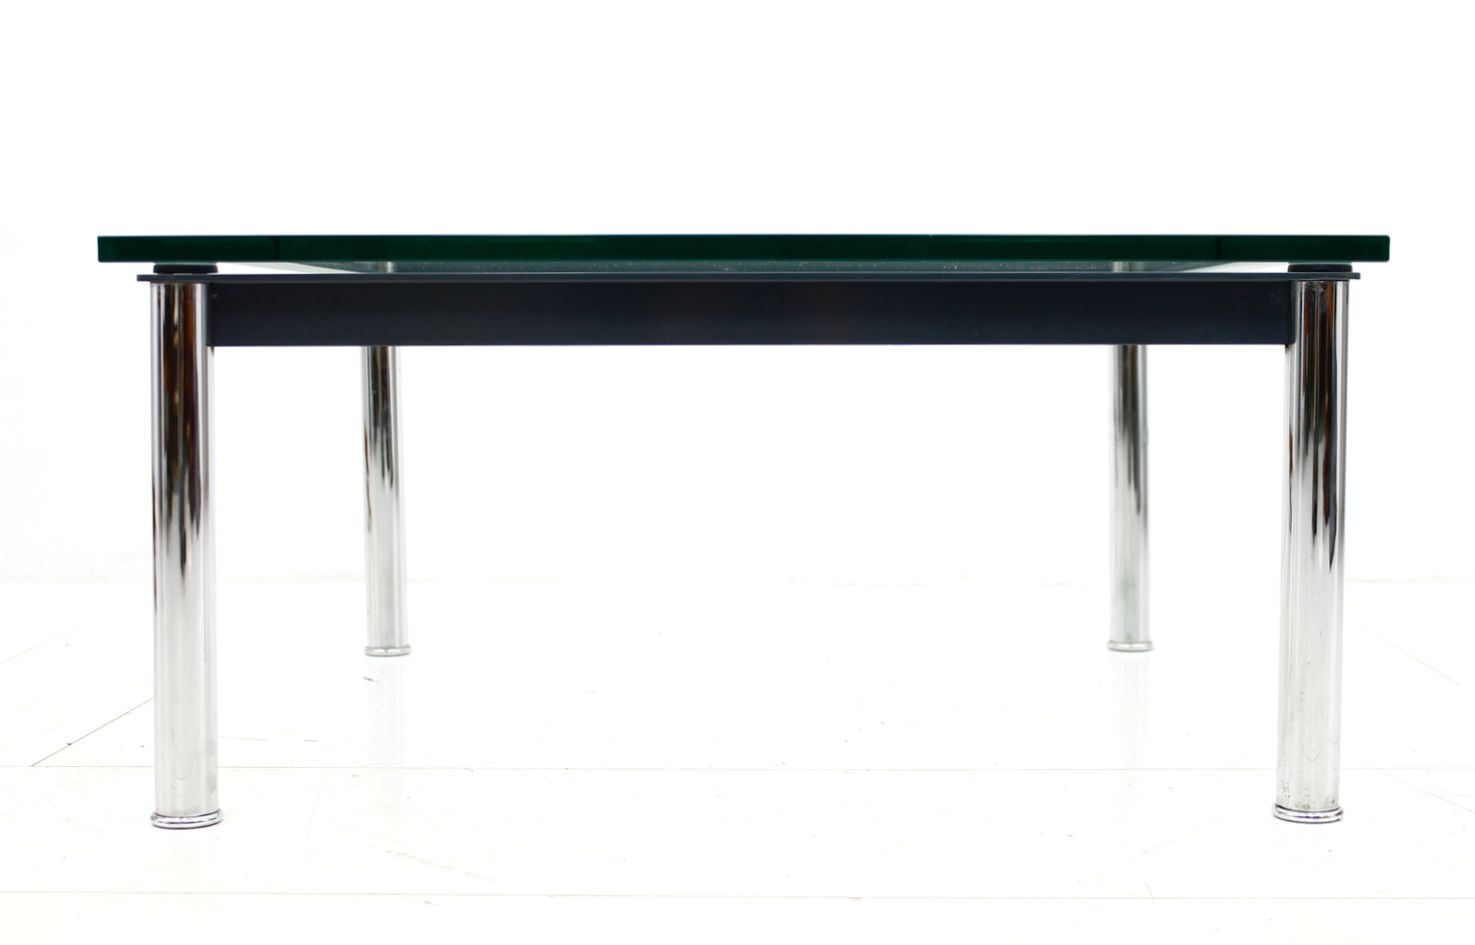 lc10 side table by le corbusier for cassina 1980s for sale at pamono. Black Bedroom Furniture Sets. Home Design Ideas